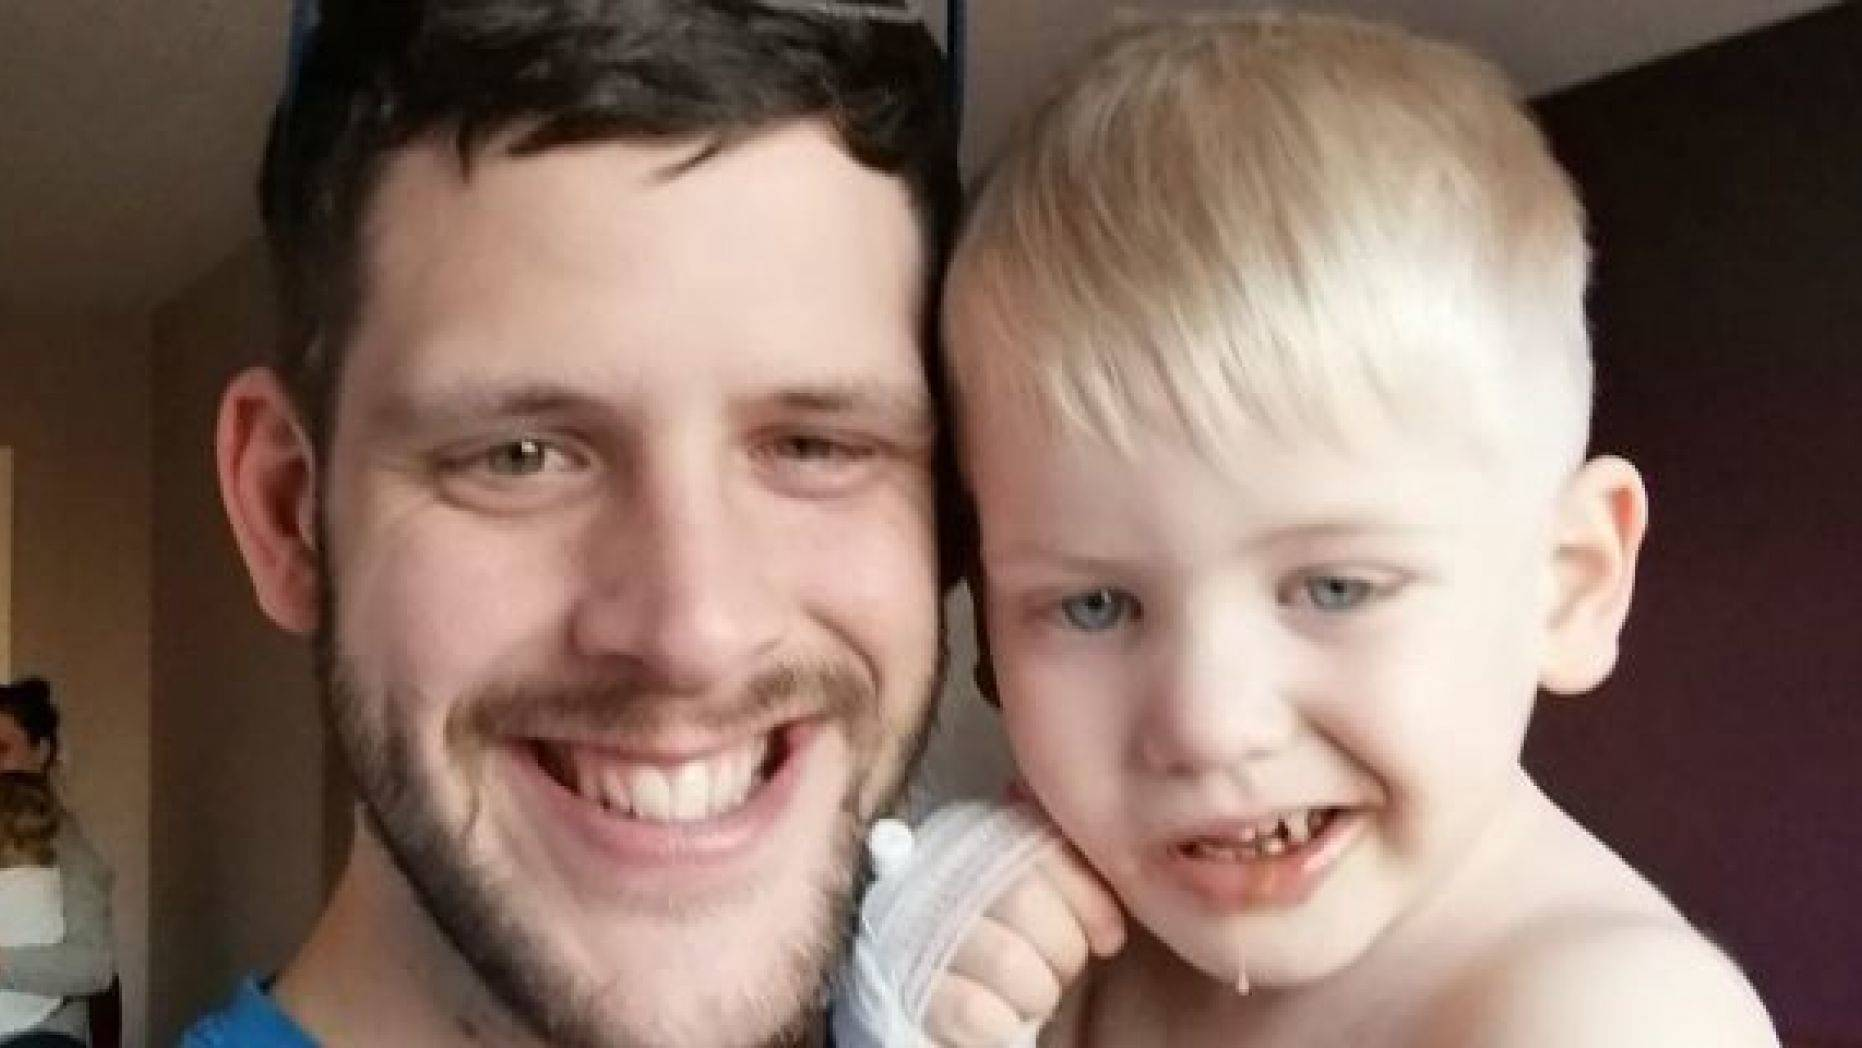 Wesley Lacey, 28, with his son Jack, said that they initially believed the boy's crooked smile was an imitation of someone else.